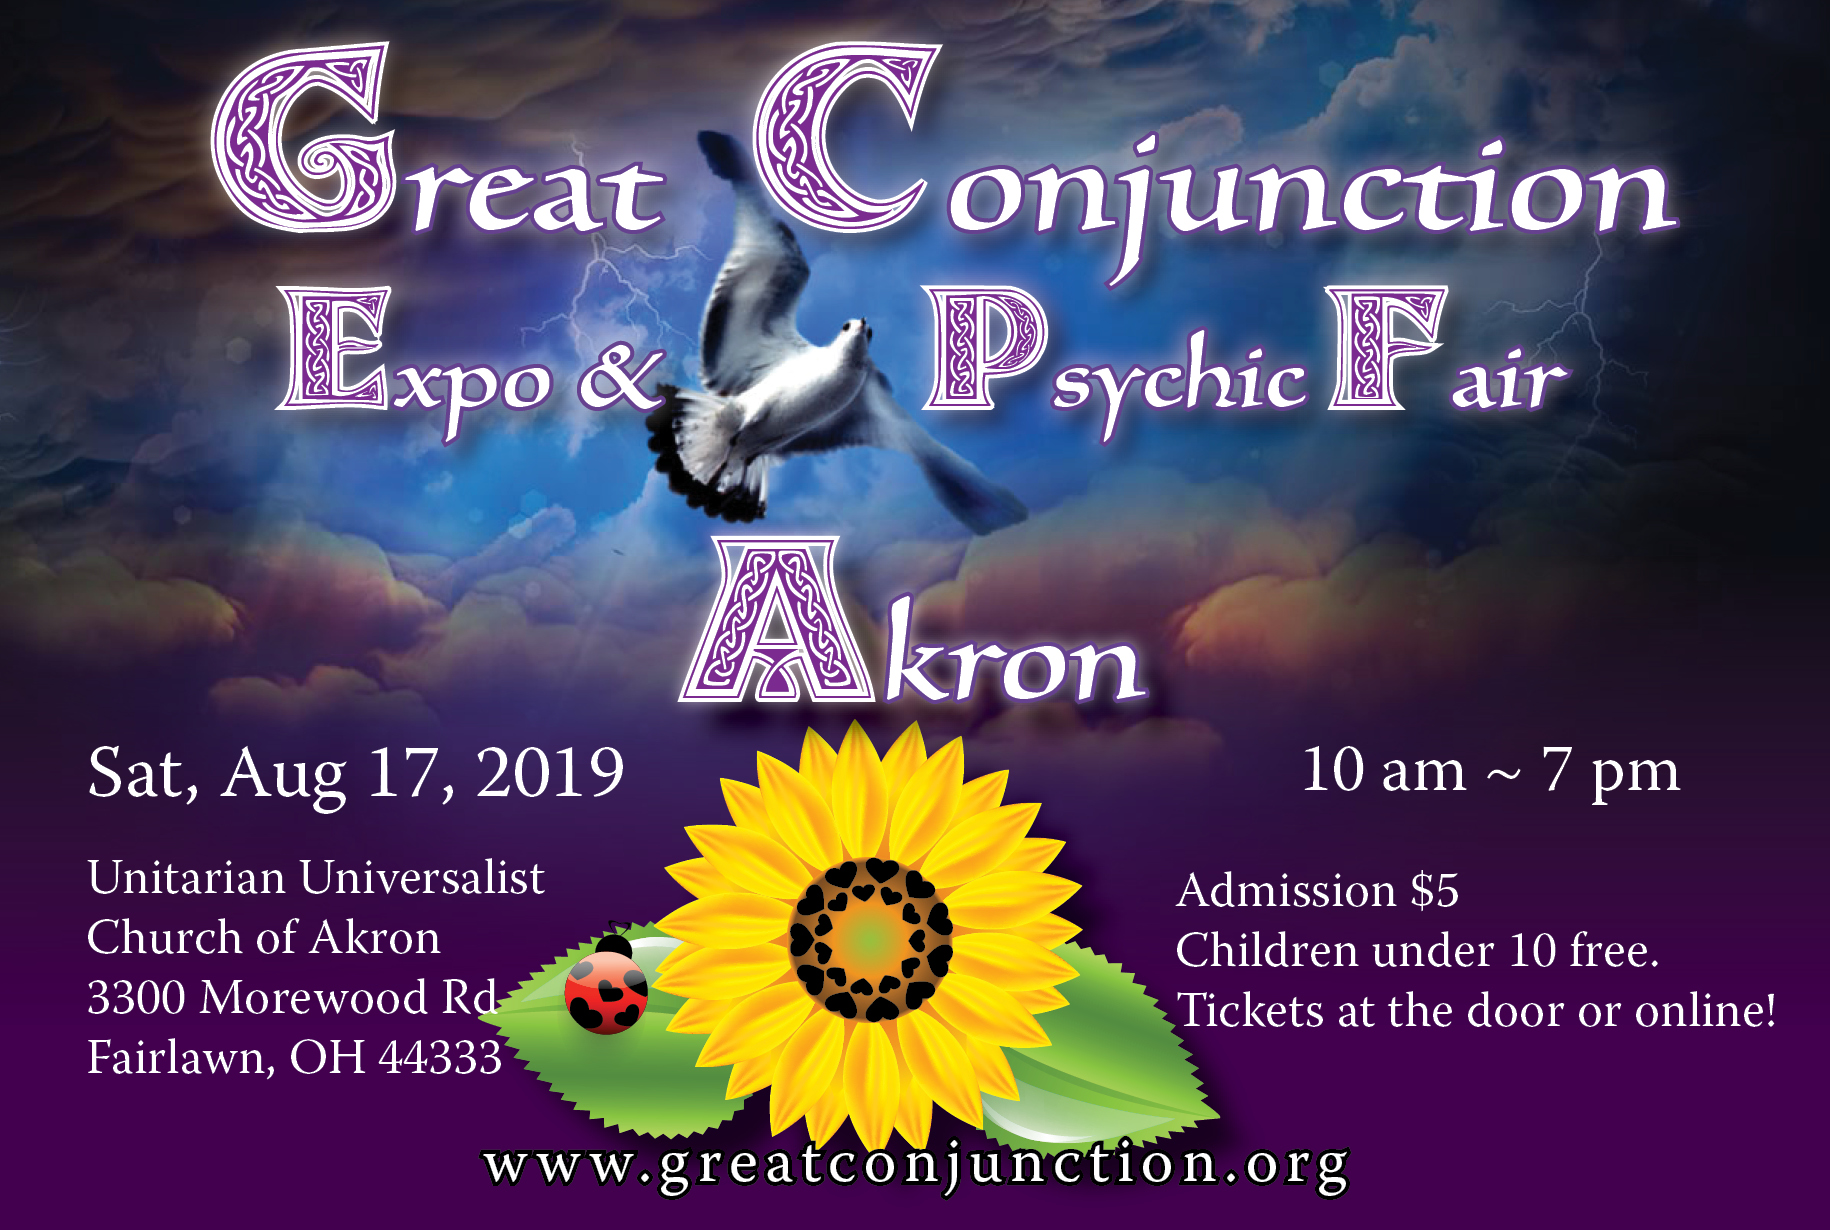 Great Conjunction Psychic Fair – Summer 2019 | The